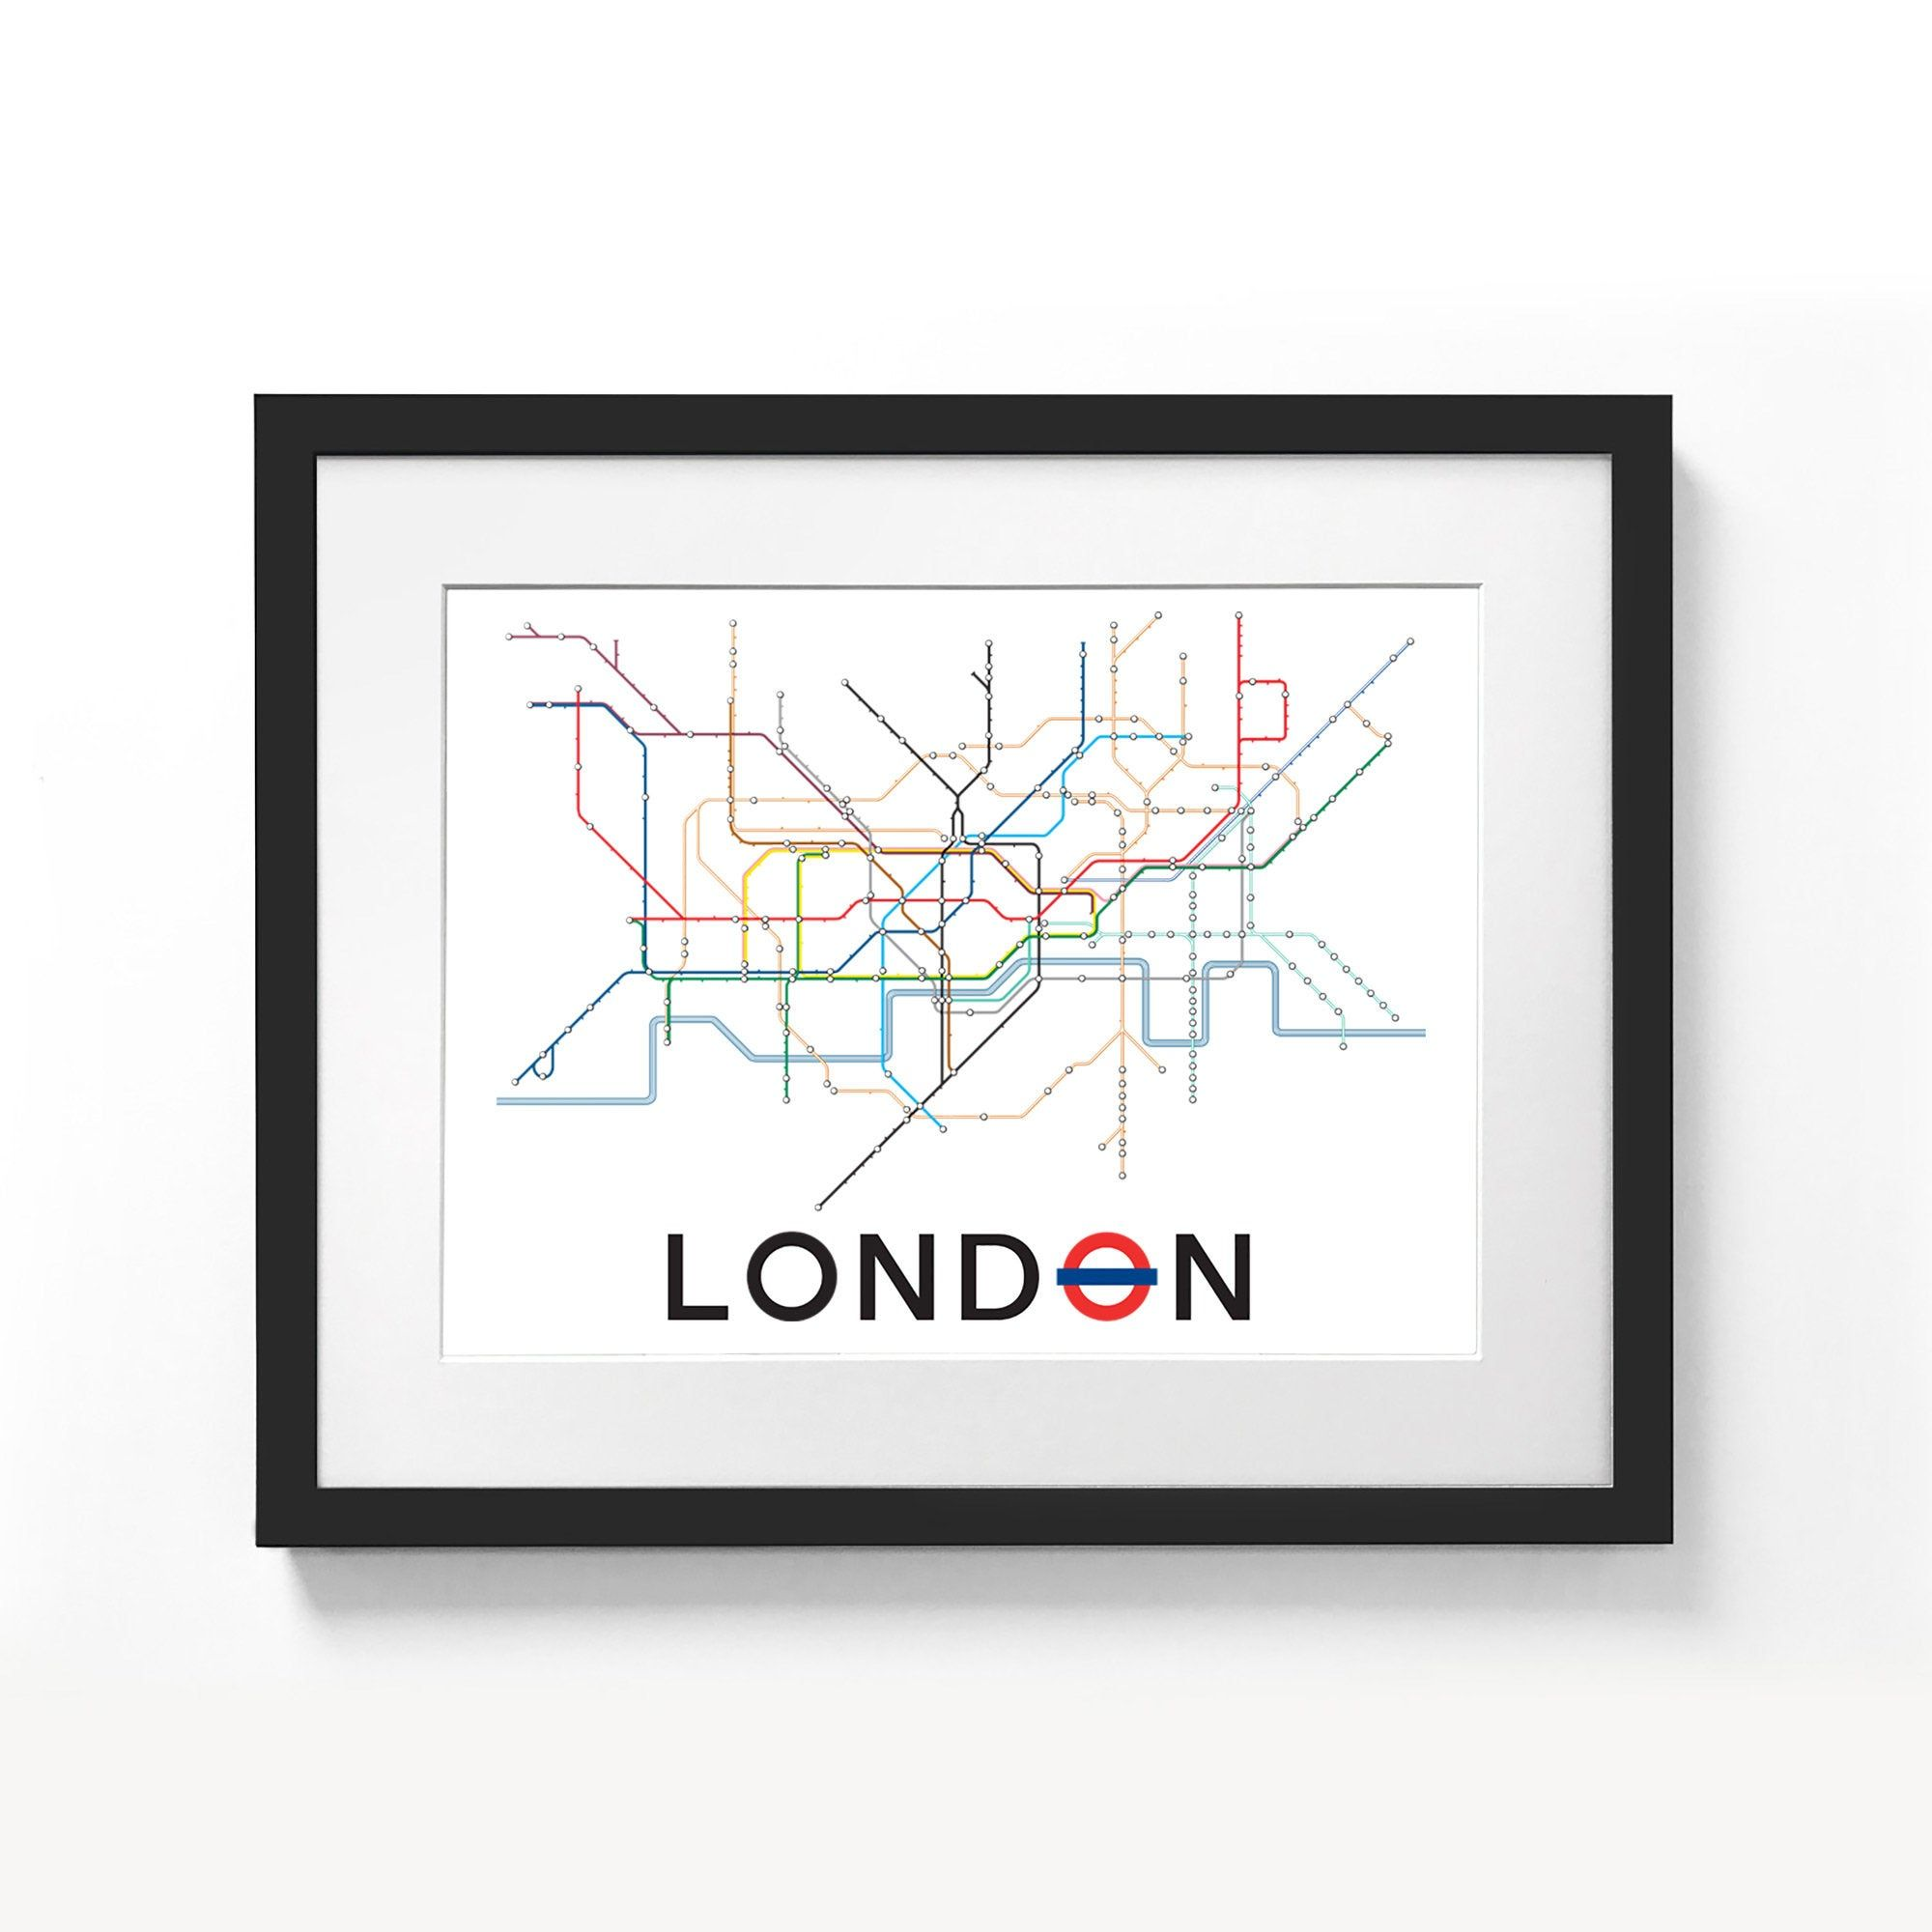 London Underground Tube Map Poster A3 A2 Sizes Minimalist